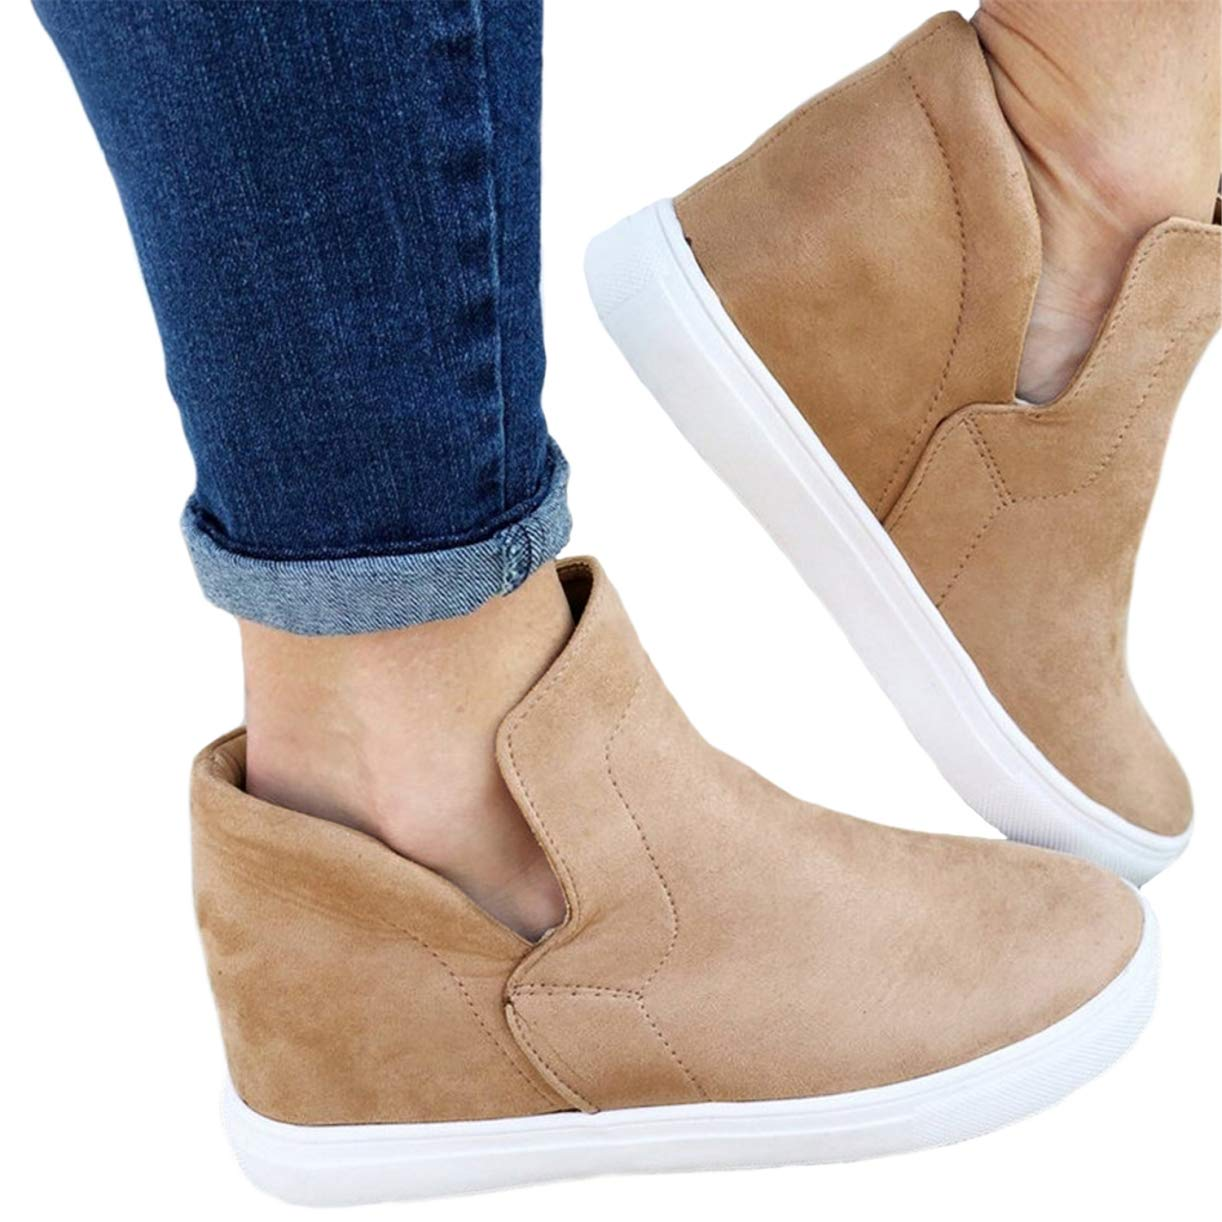 580e6be36054b Womens High Top Slip on Platform Sneakers Flatform Chelsea Booties Flat  Ankle Boots